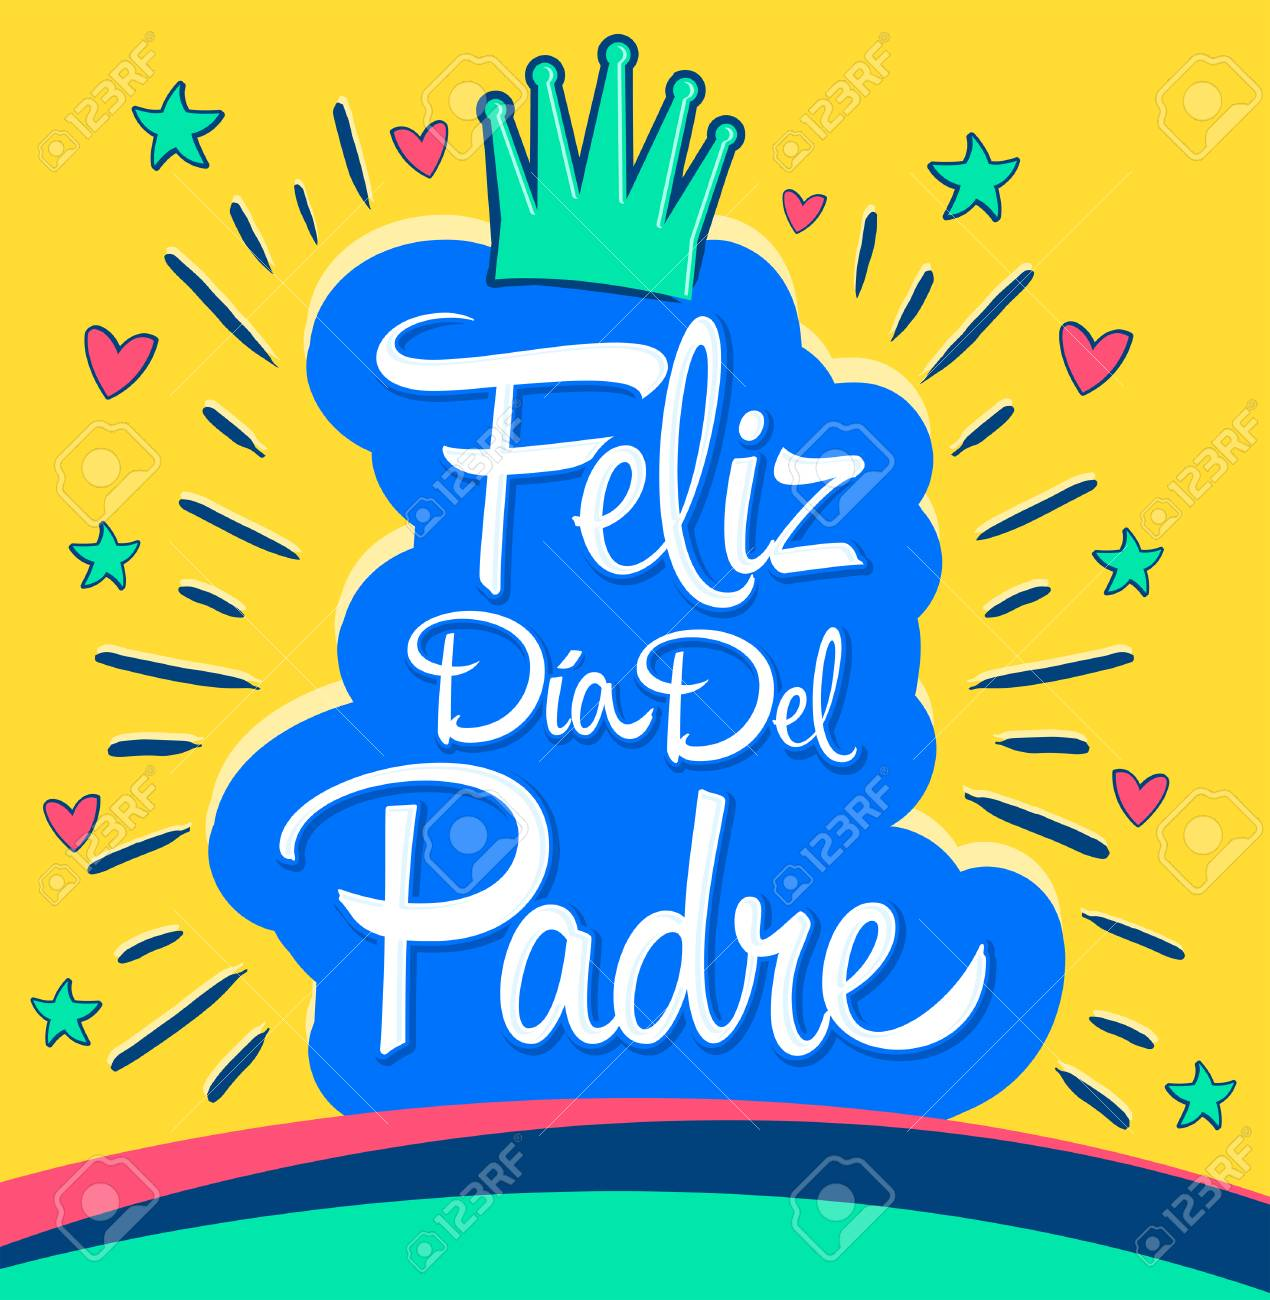 feliz dia del padre happy fathers day spanish text vector